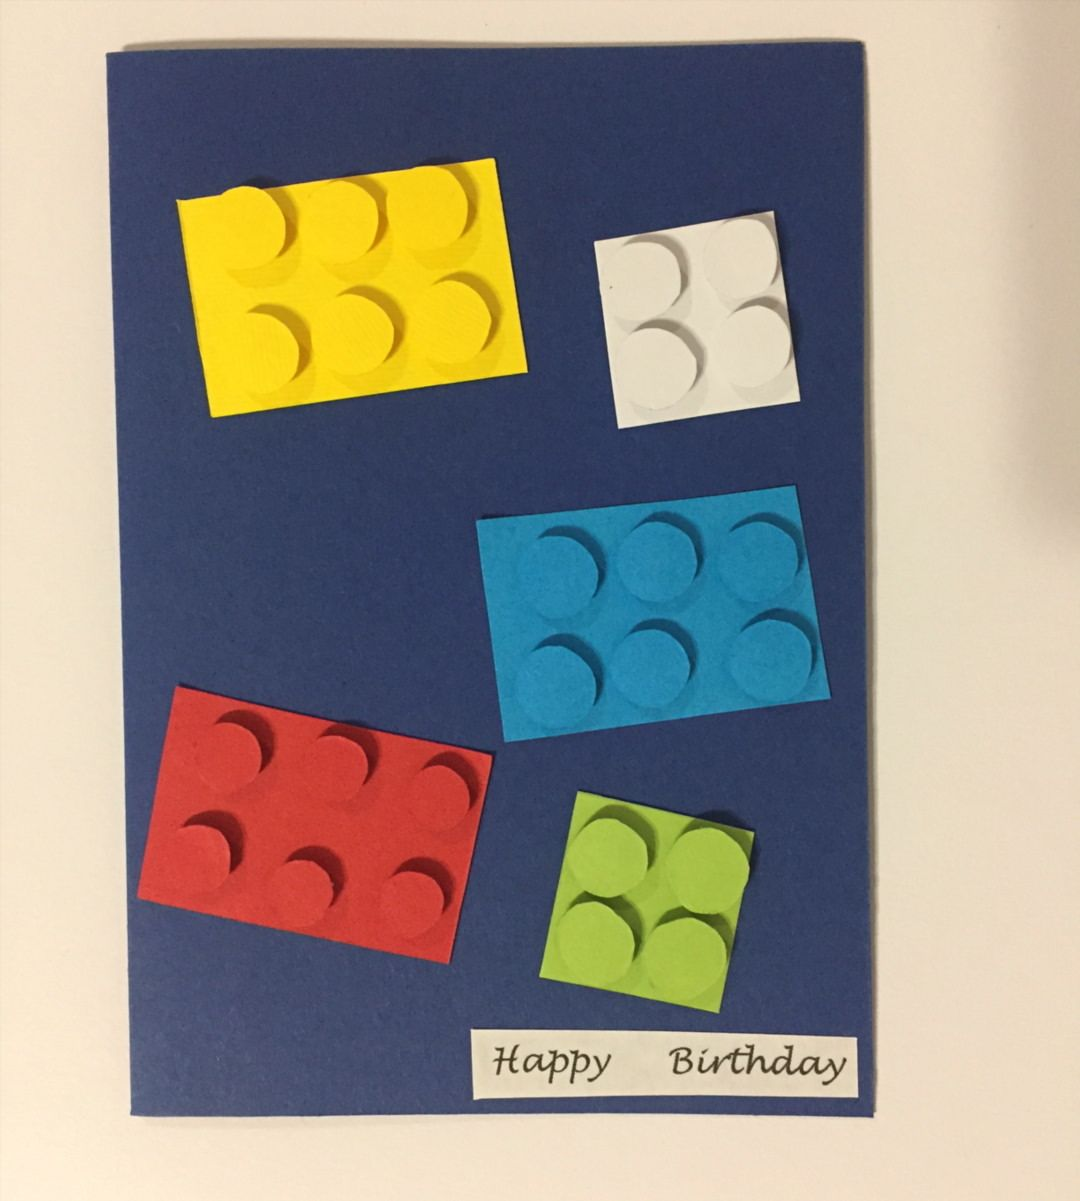 Lego Inspired Birthday Greeting Card Greetingcard Toys Lego